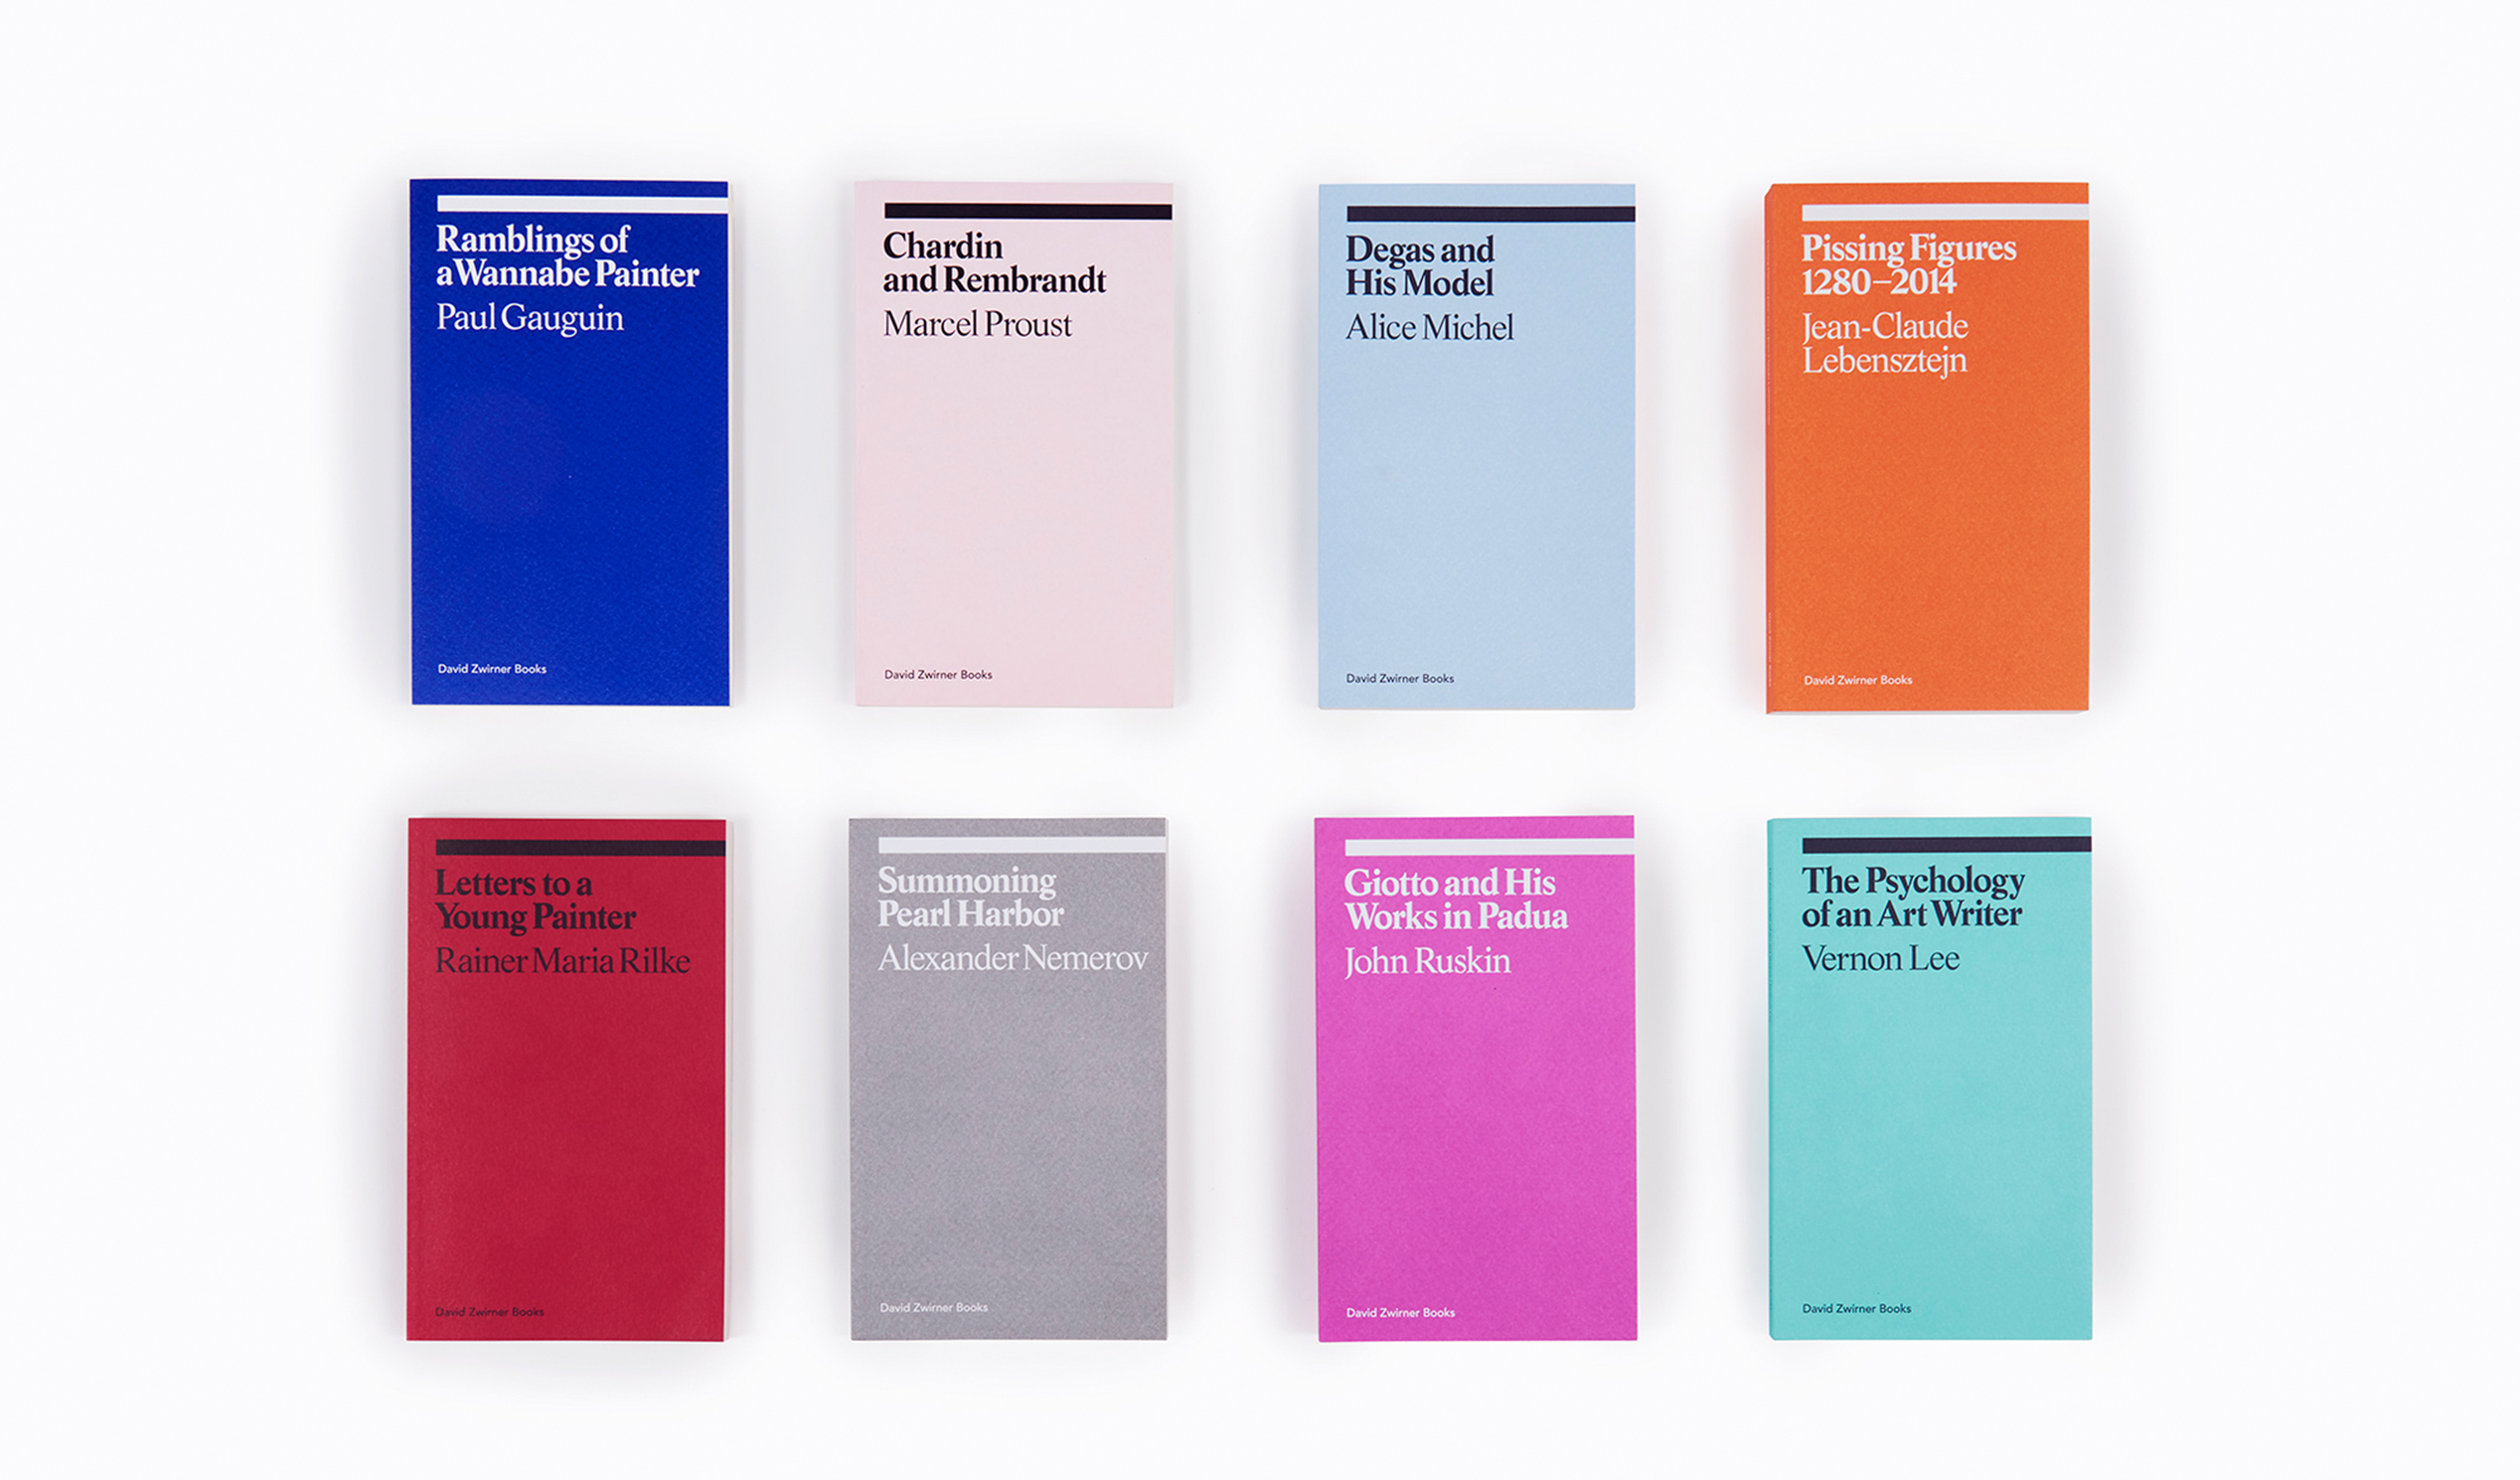 A photograph of books in the David Zwirner Books Ekphrasis series.